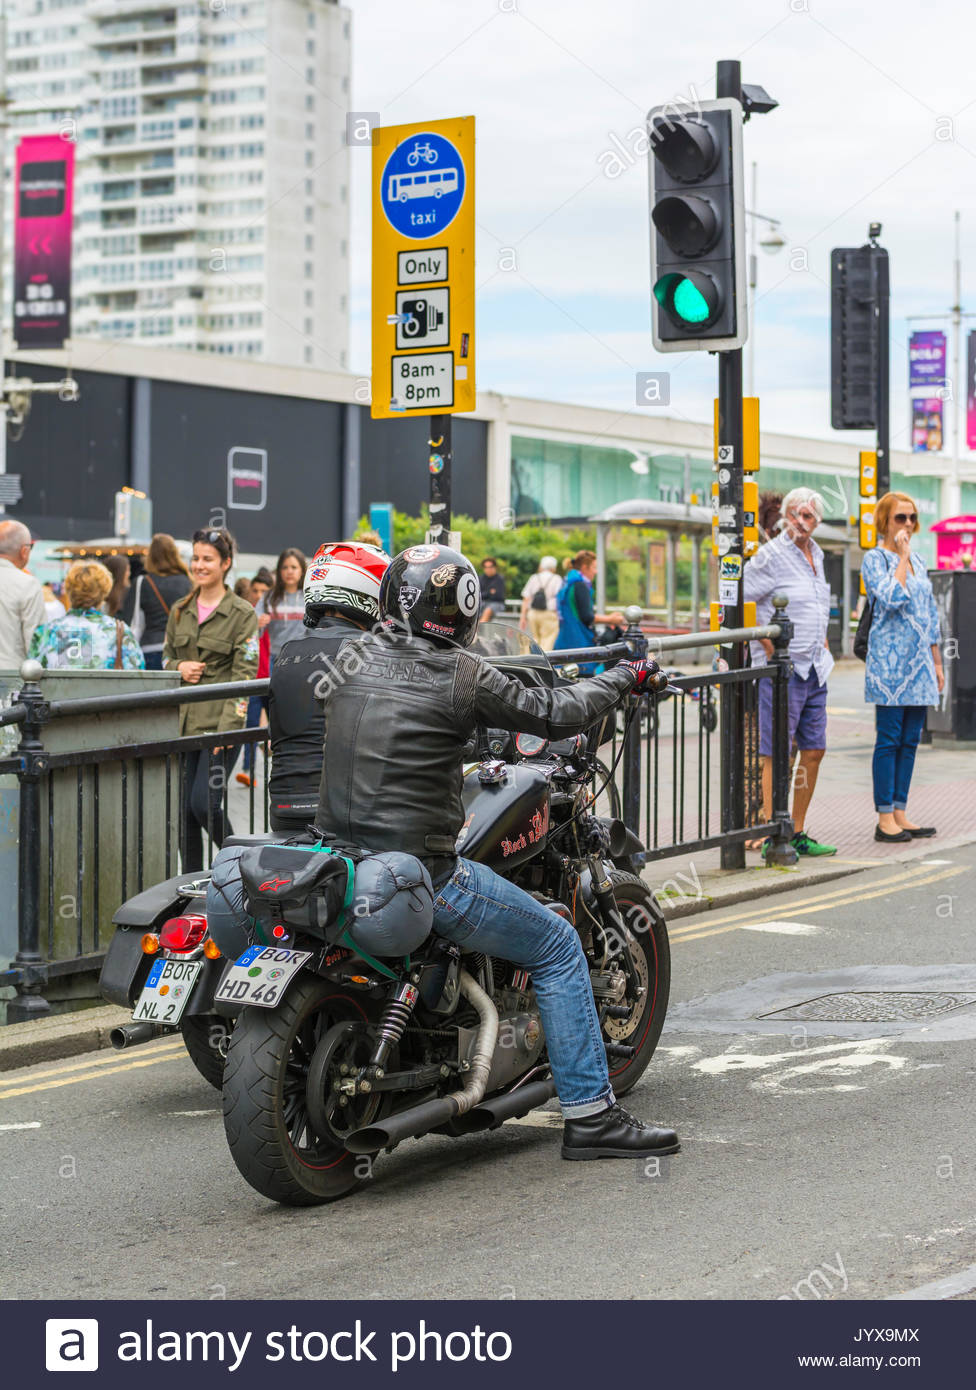 Pair of foreign motorcyclists at traffic lights in the UK. - Stock Image